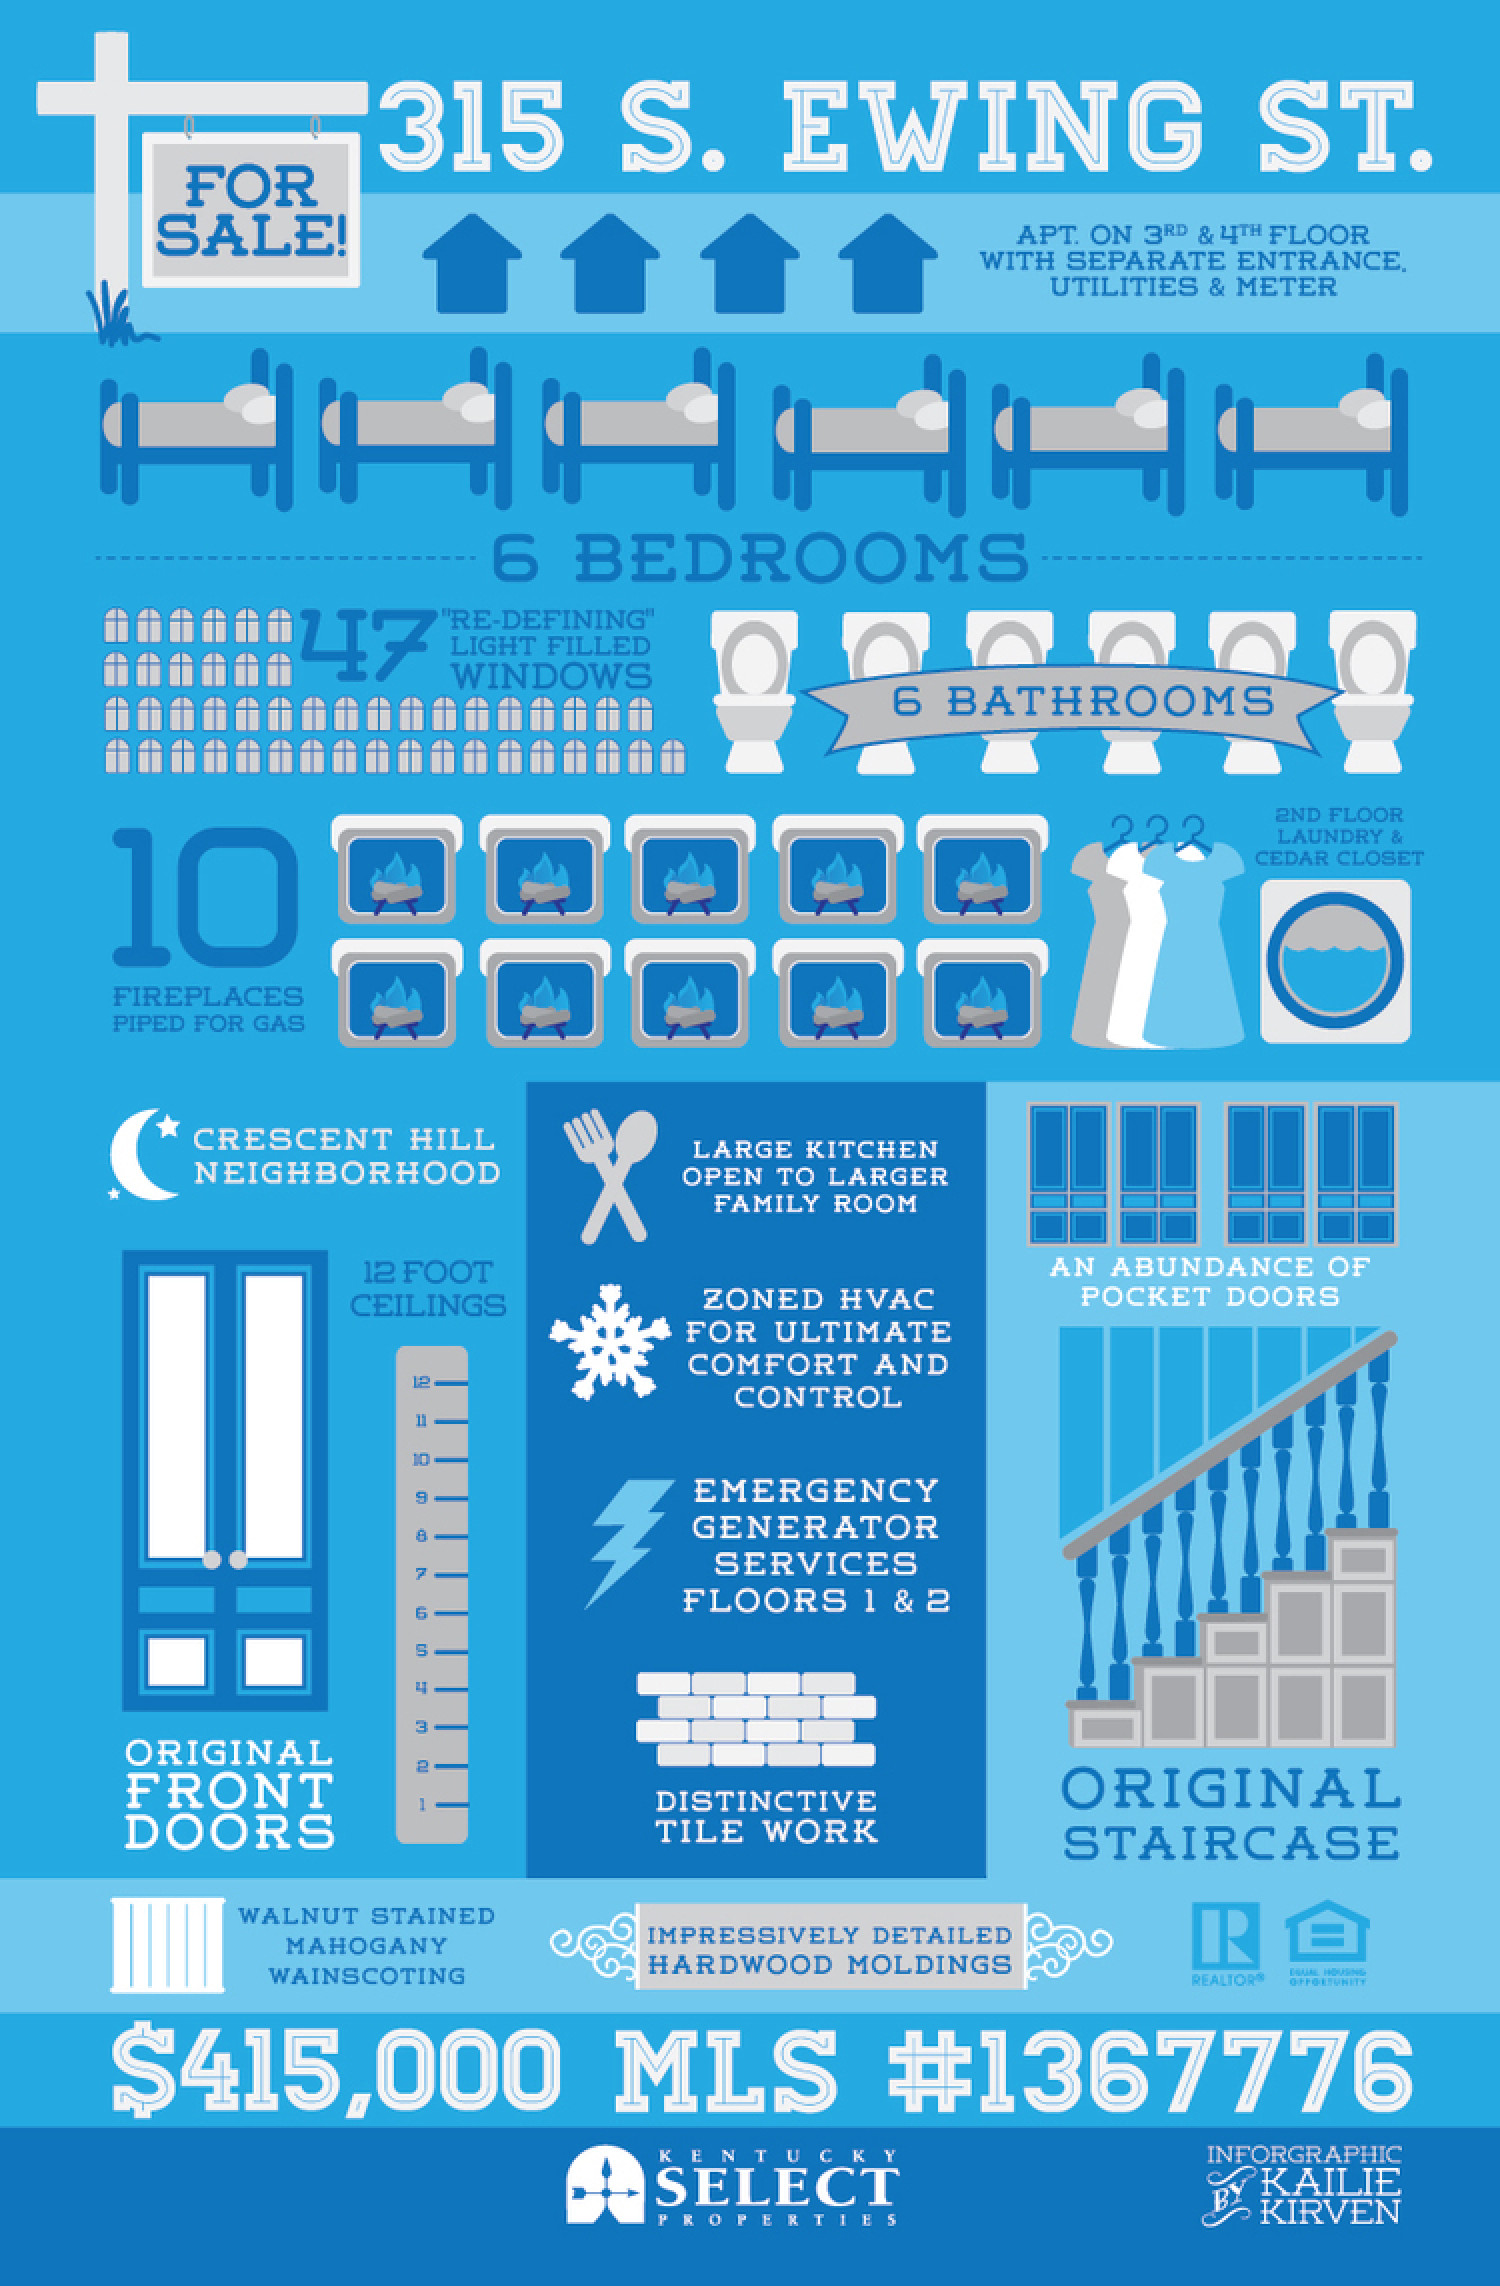 315 S. Ewing St. Infographic